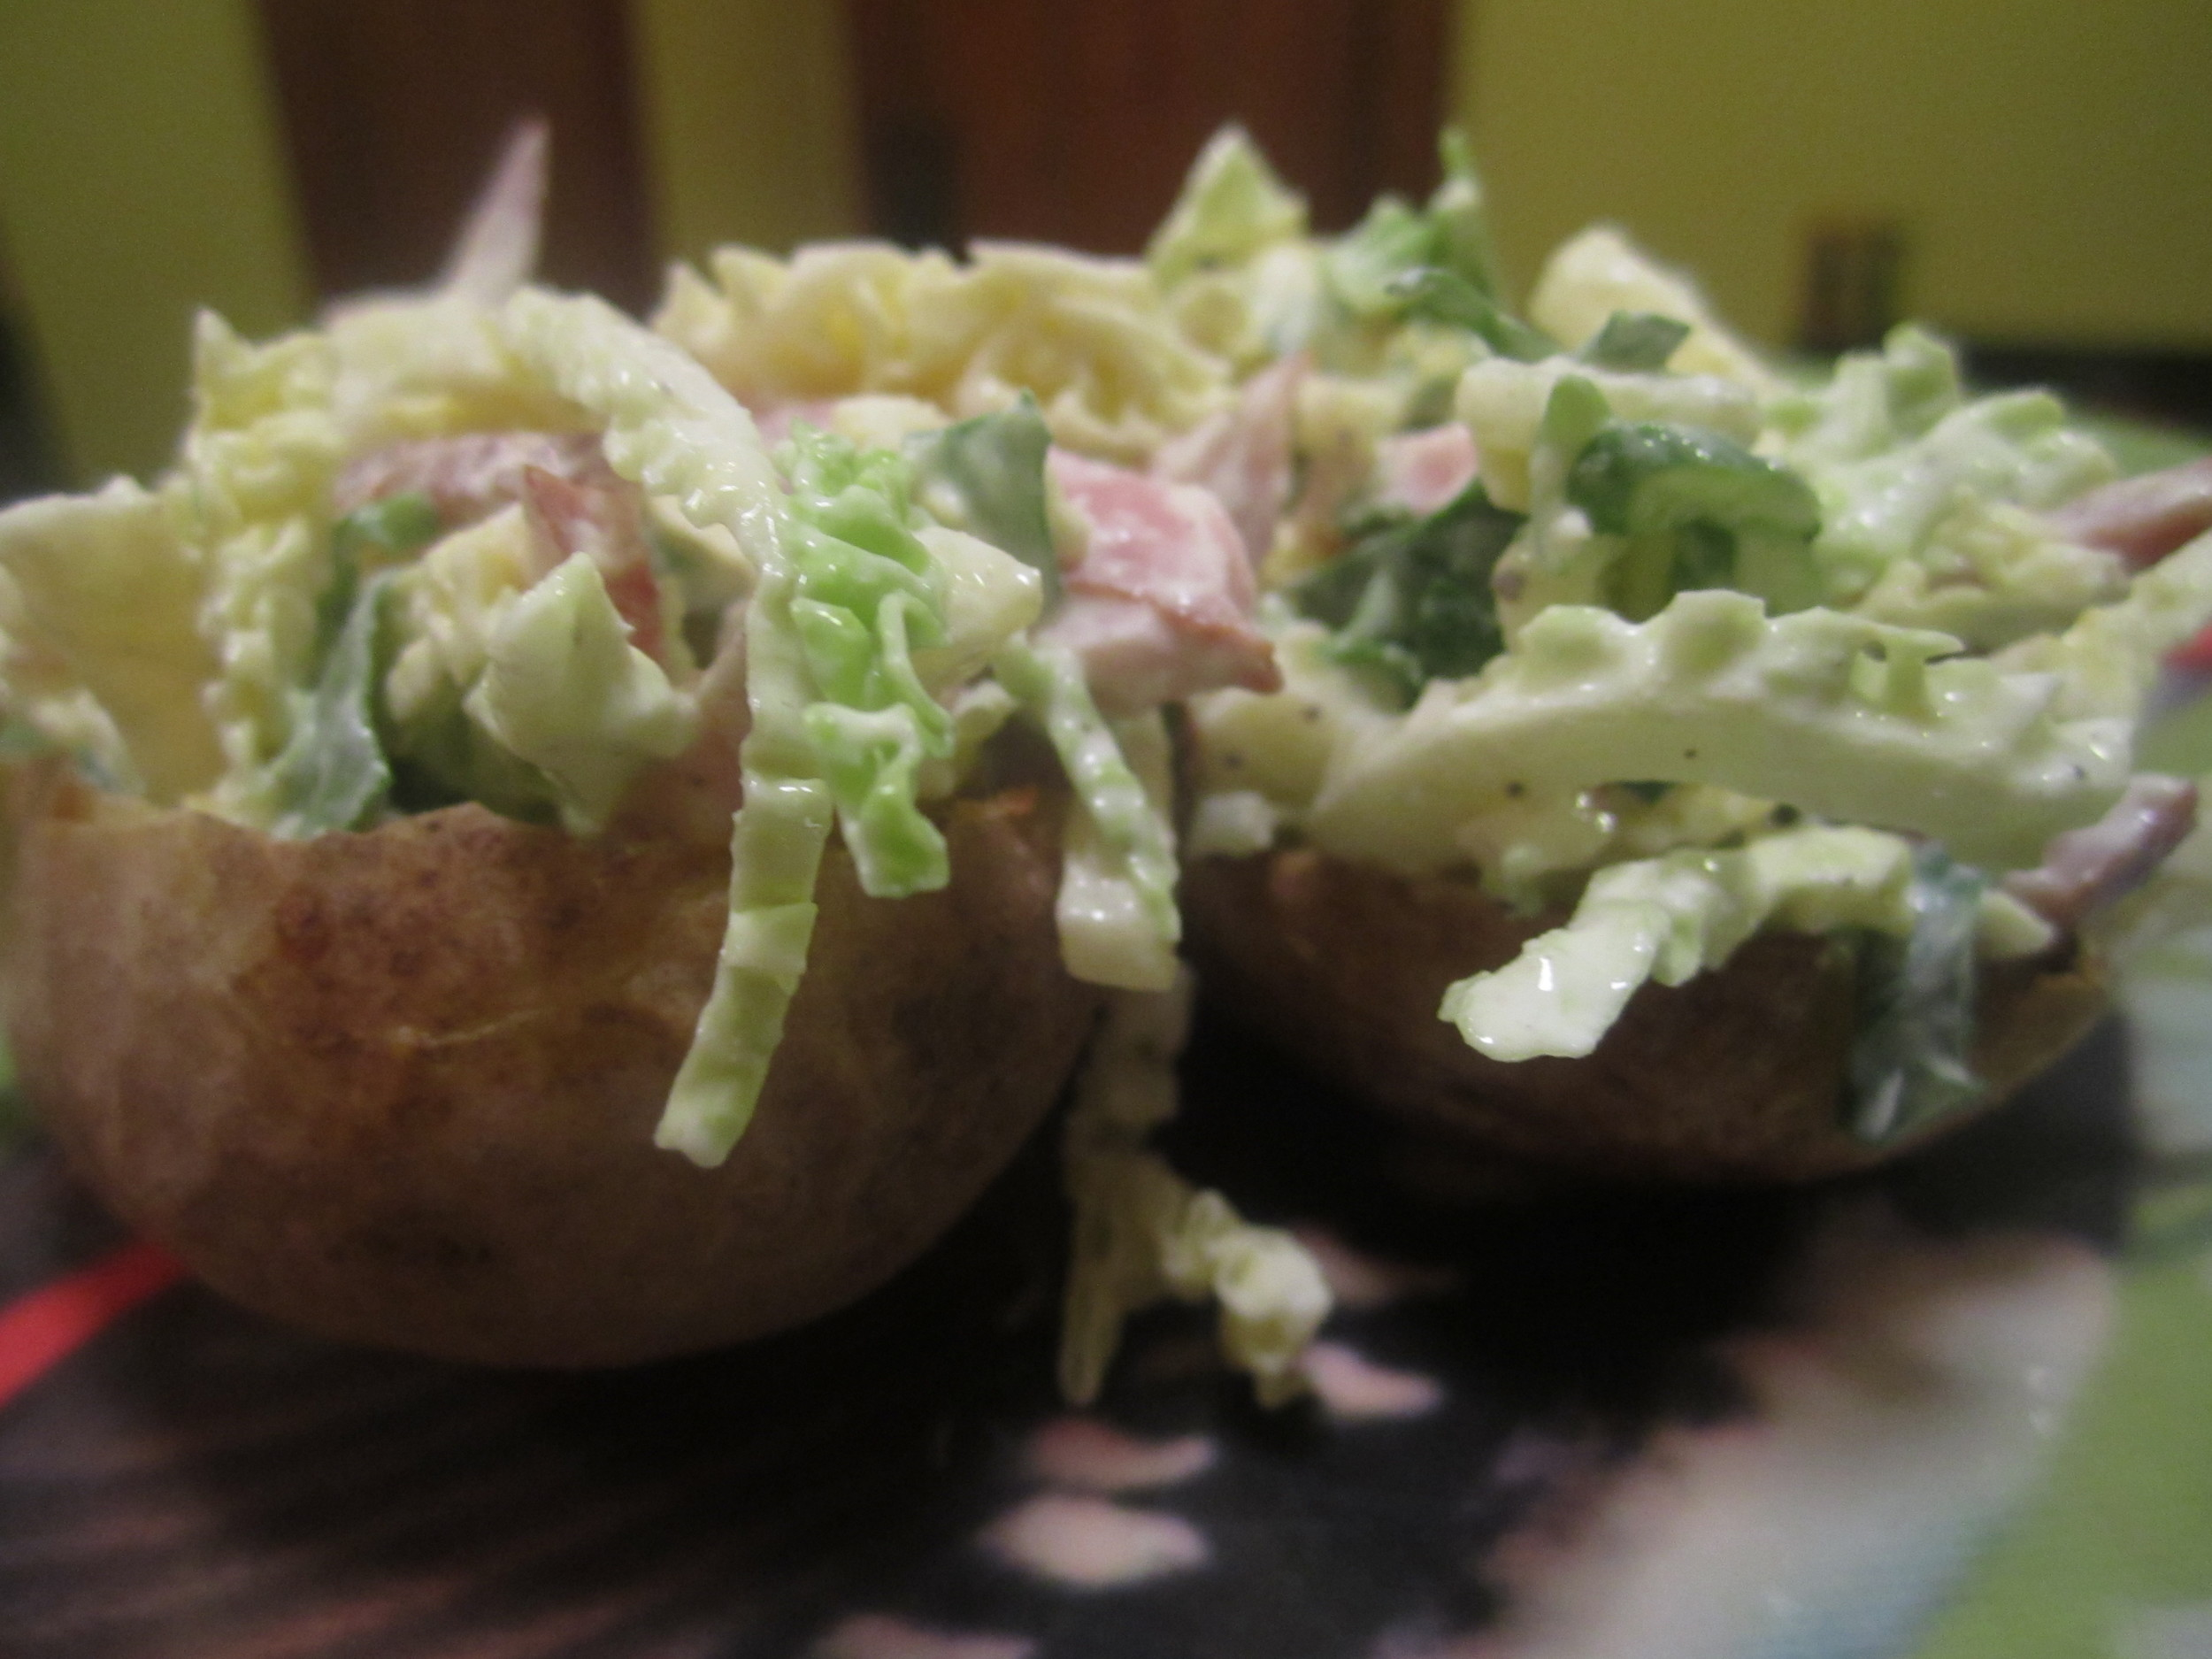 Punchy apple and ham slaw for potato skins